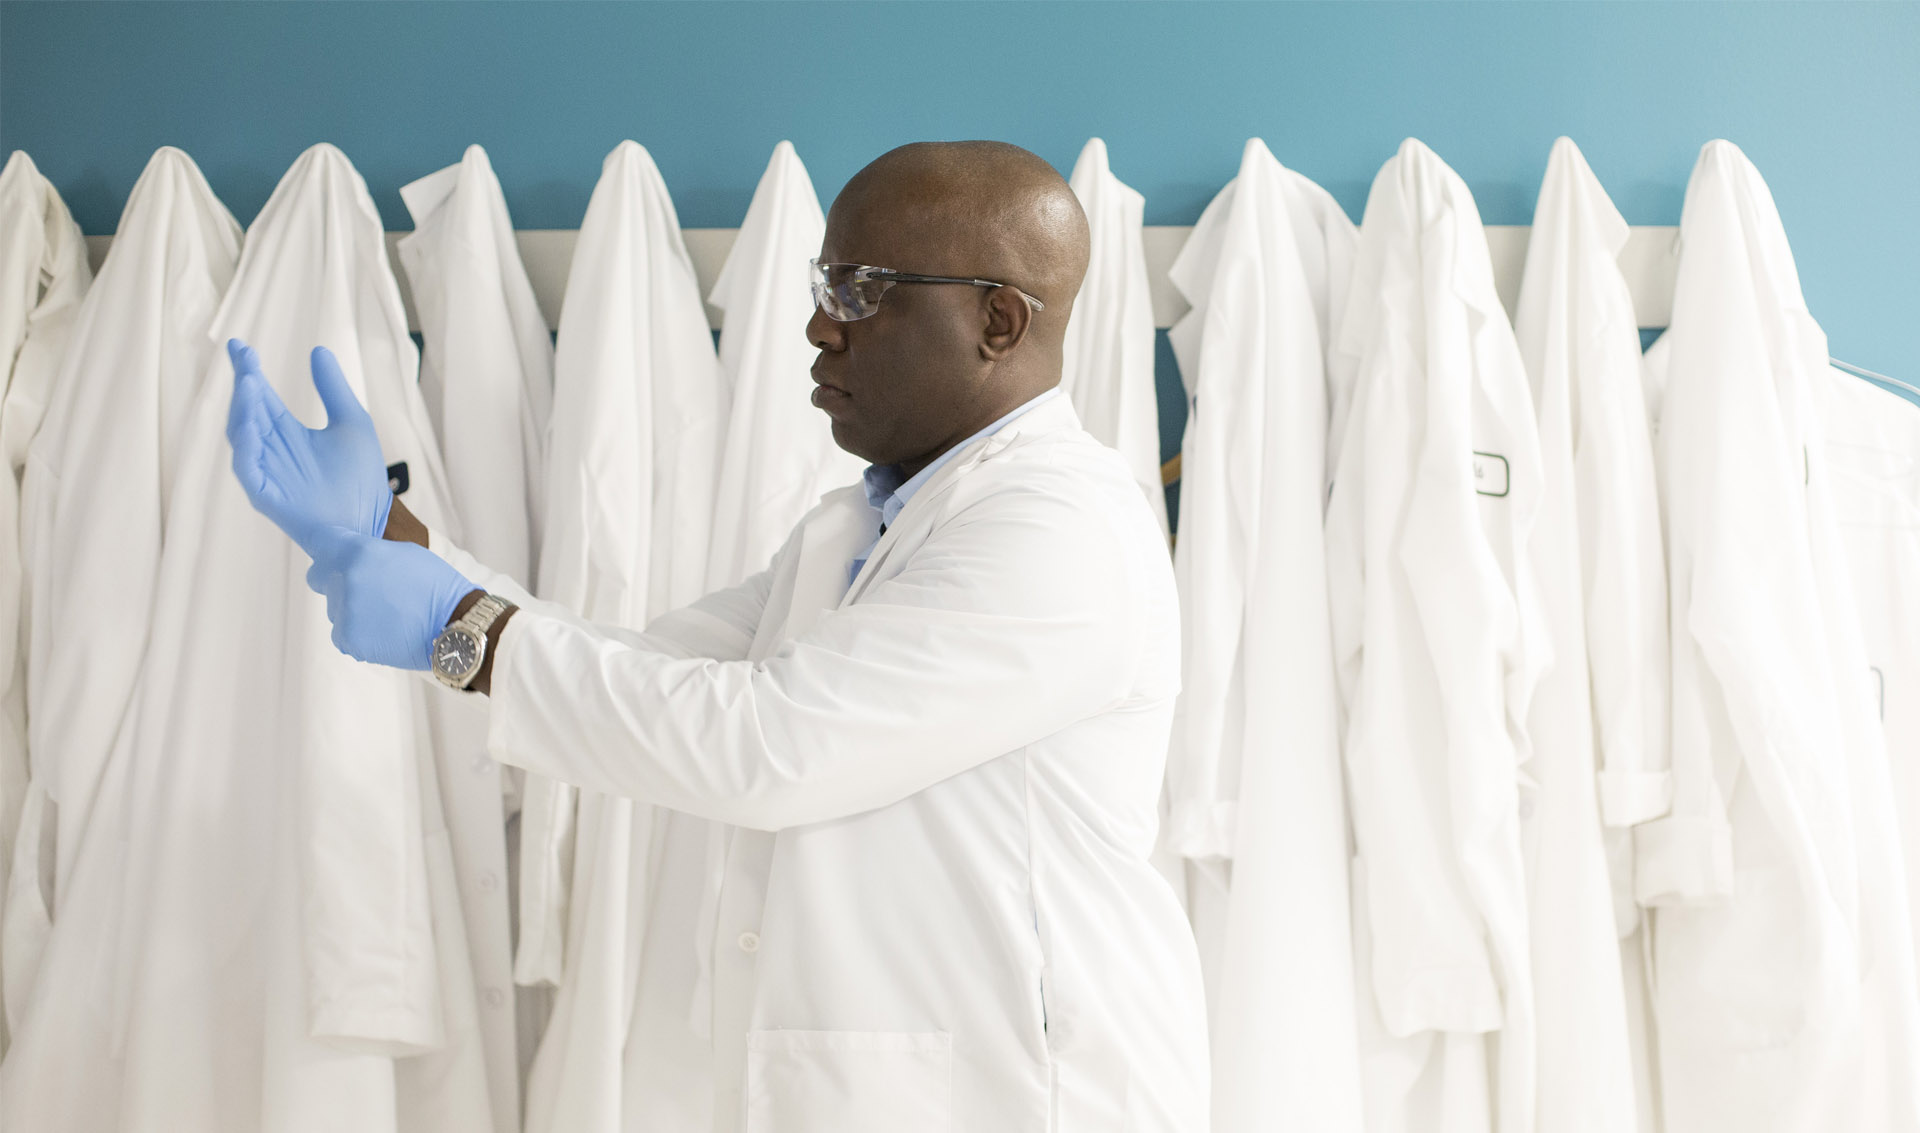 A scientist in a lab coat putting on blue gloves.